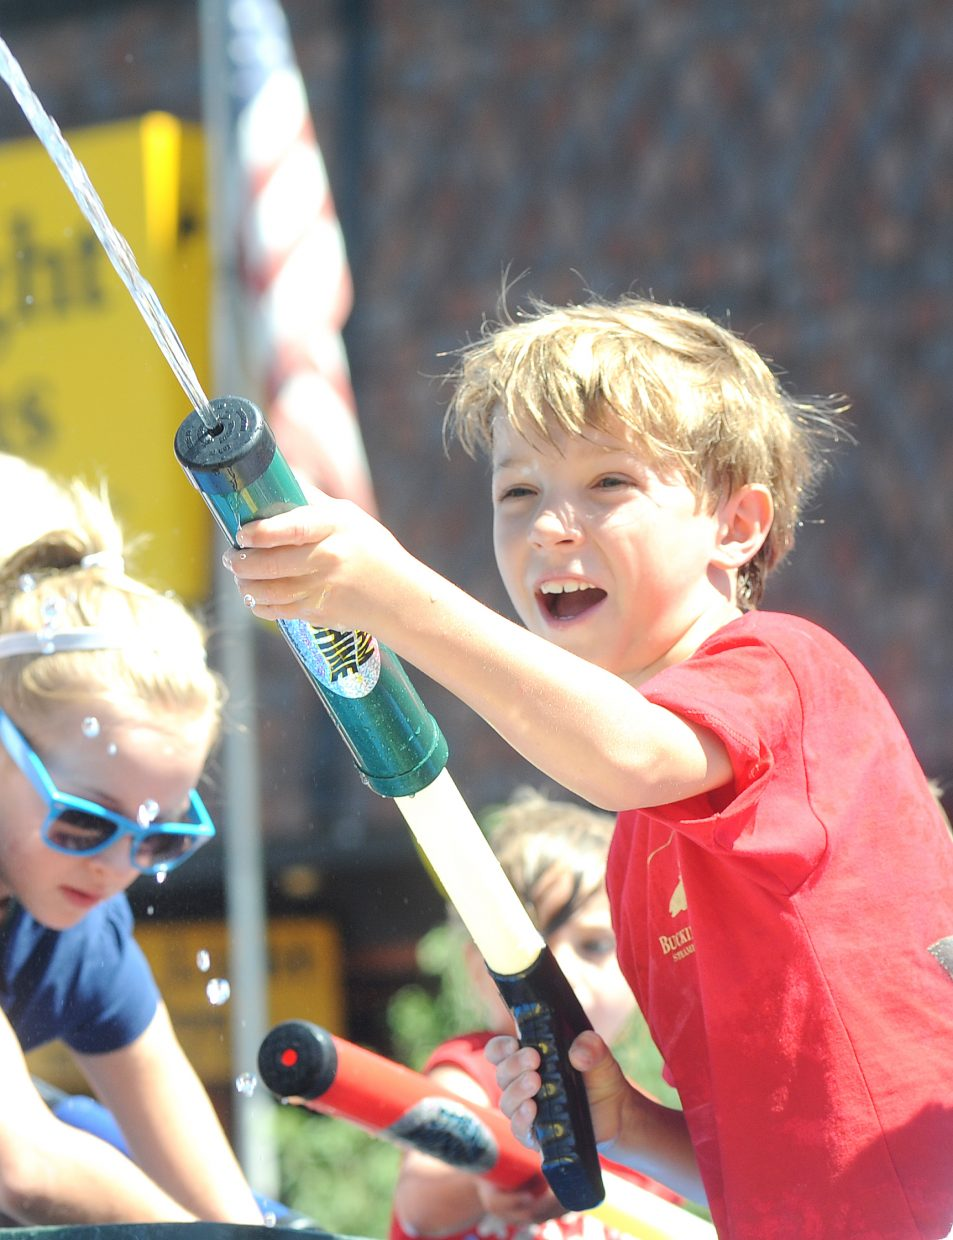 Alan Duty, 7, sprays the crowd on Sunday during the Fourth of July parade in downtown Steamboat Springs.